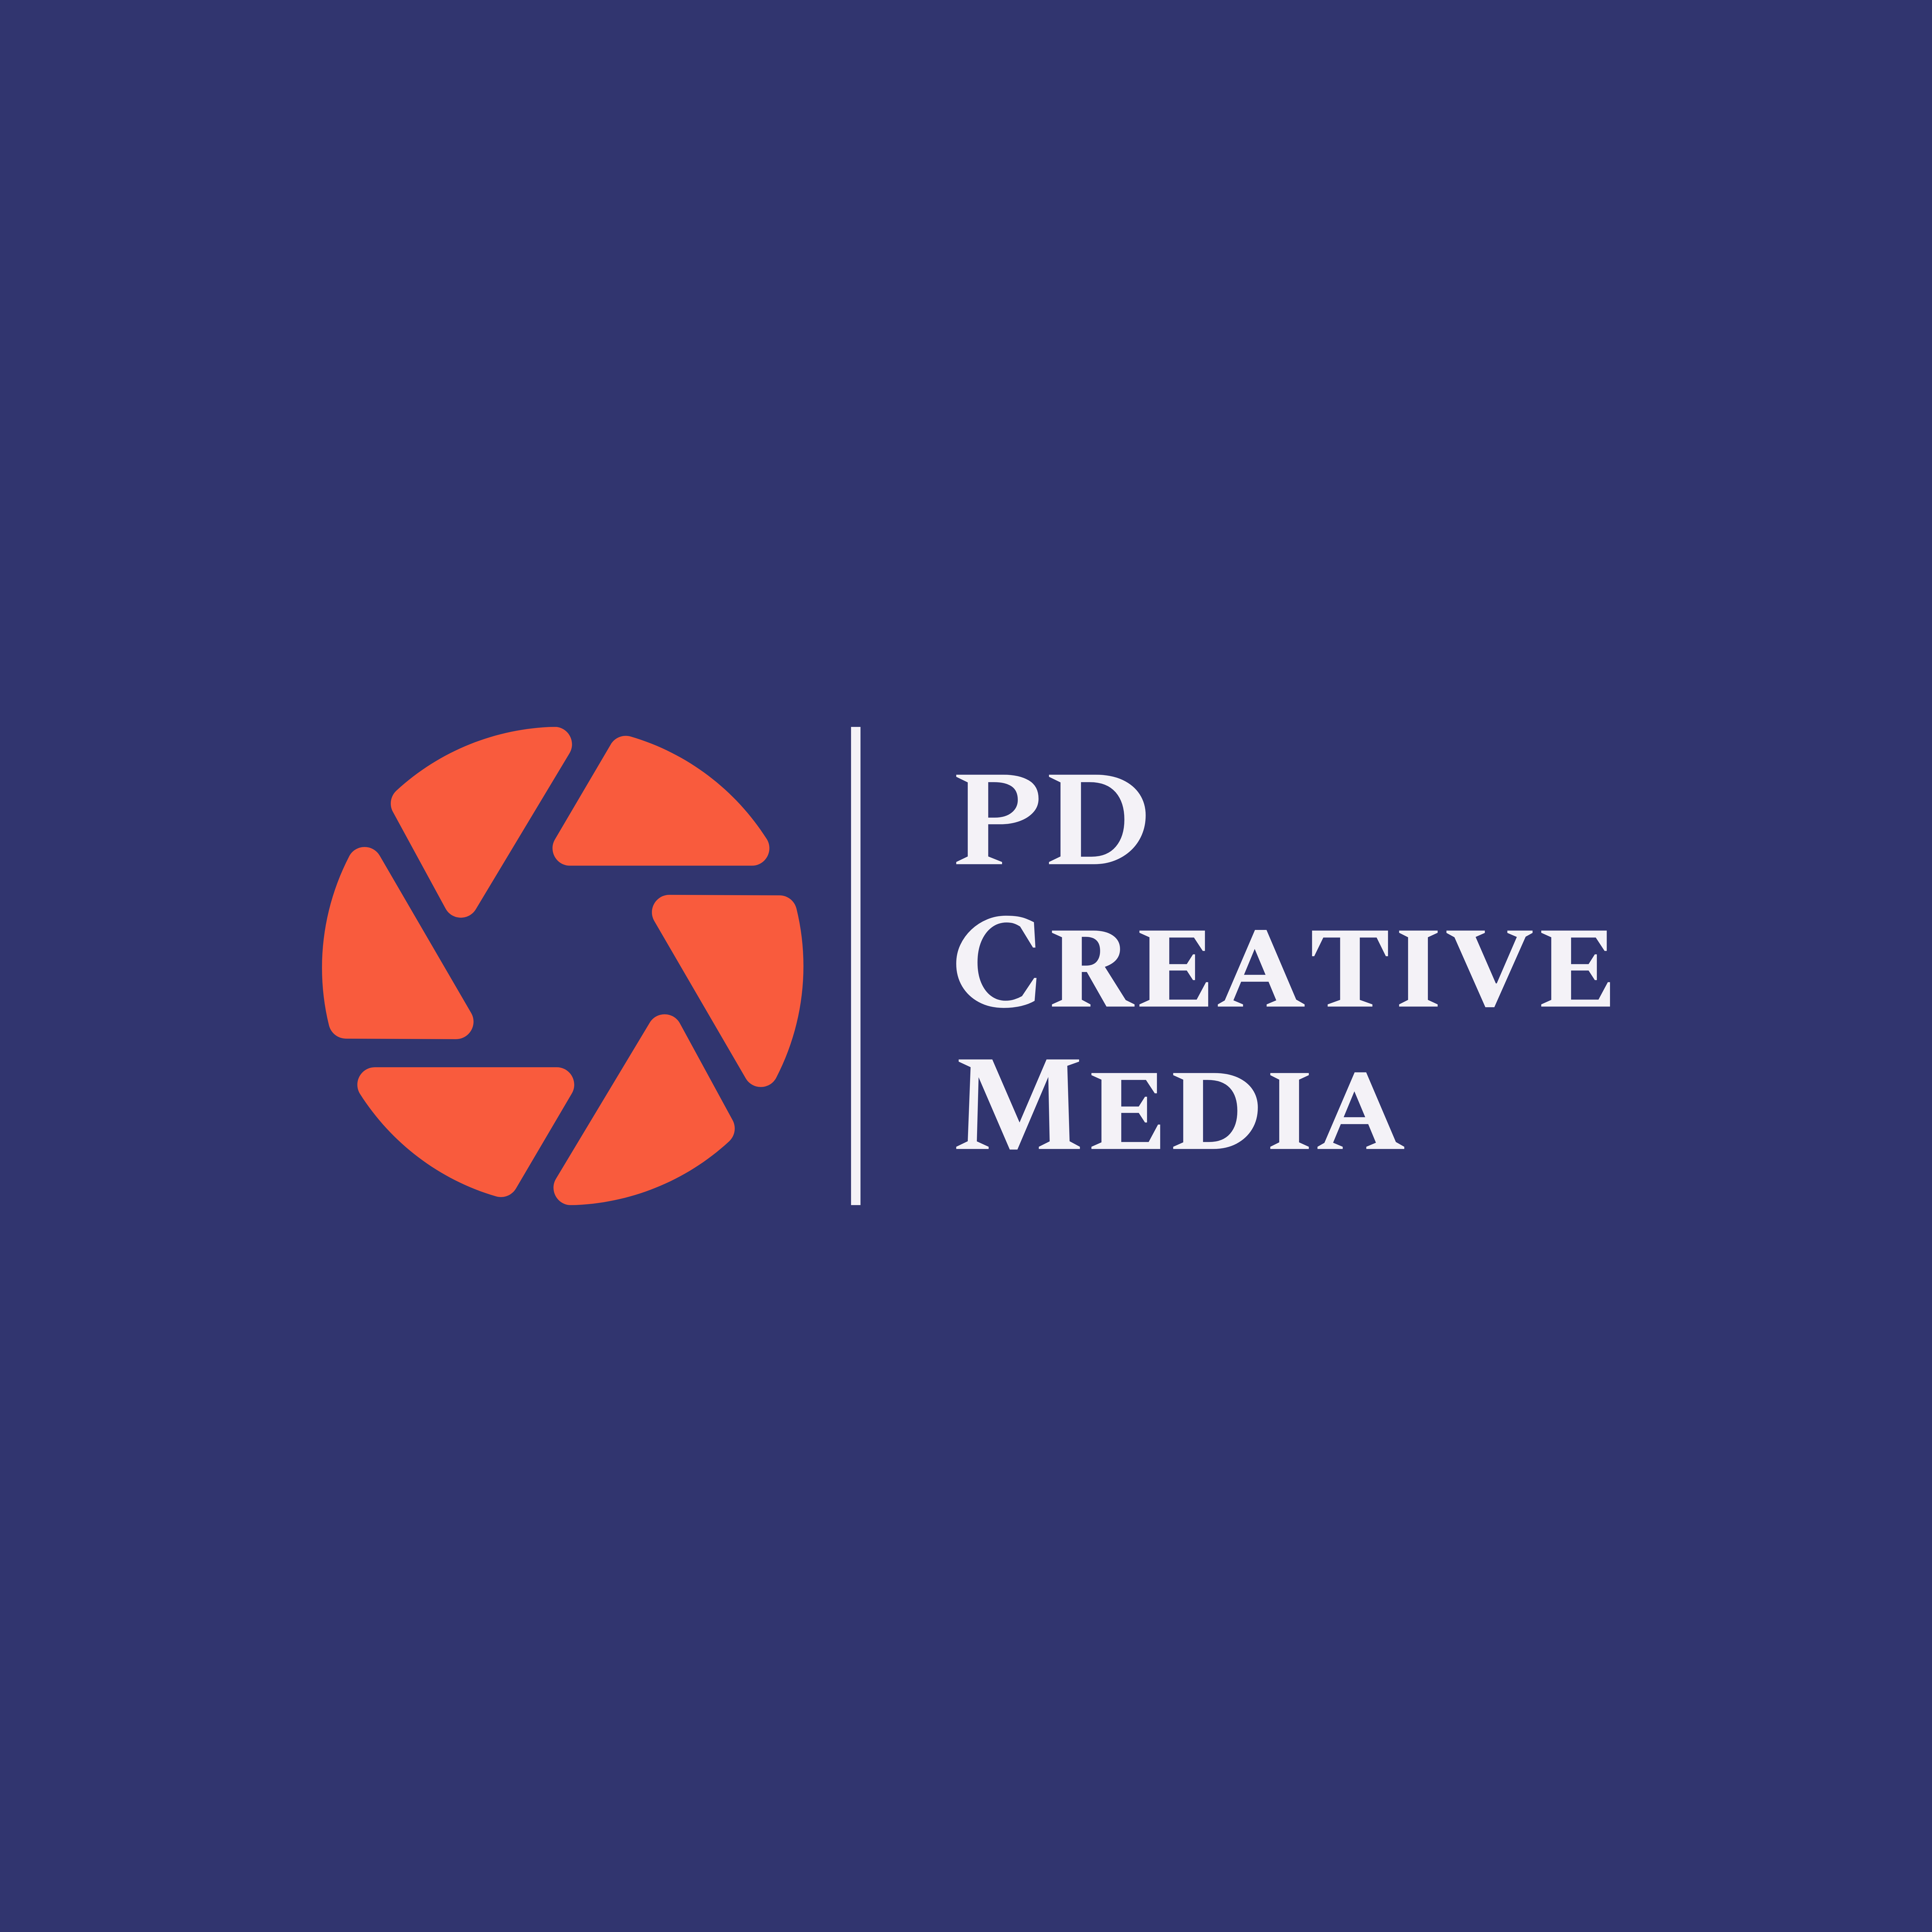 'PD Creative Media' - Photography Services